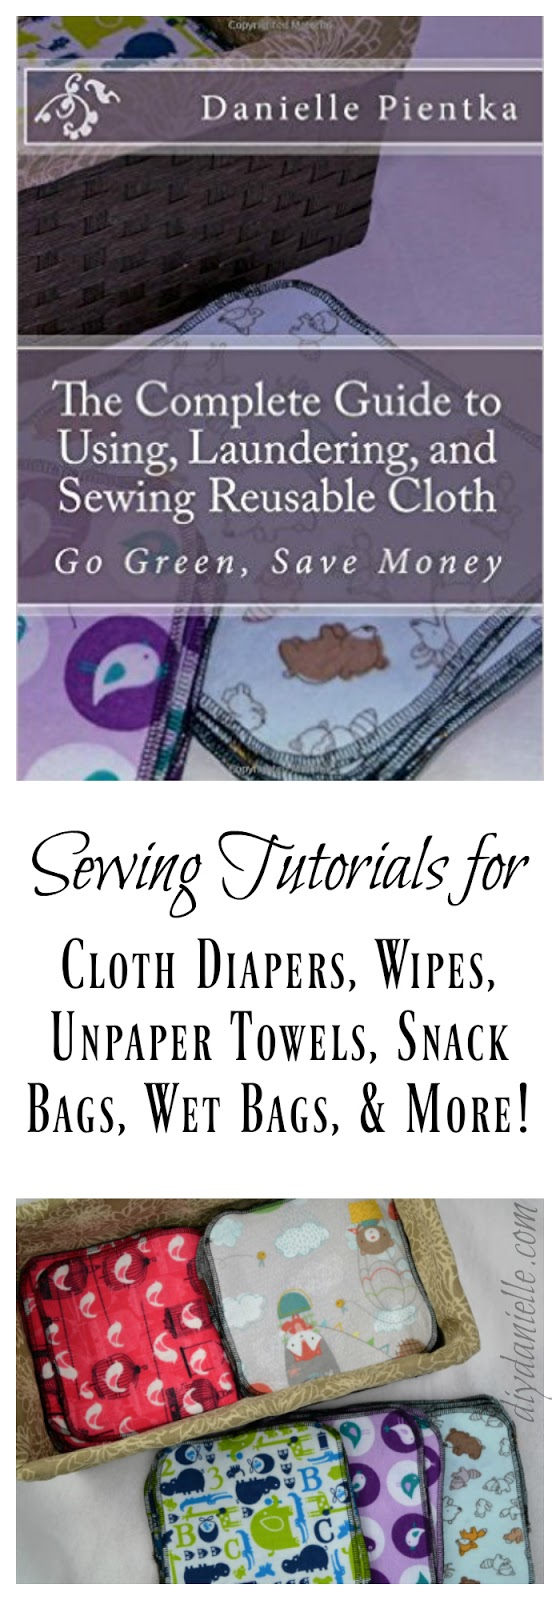 The Complete Guide to Using, Laundering, and Sewing Reusable Cloth Products like cloth diapers, unpaper towels, and more.